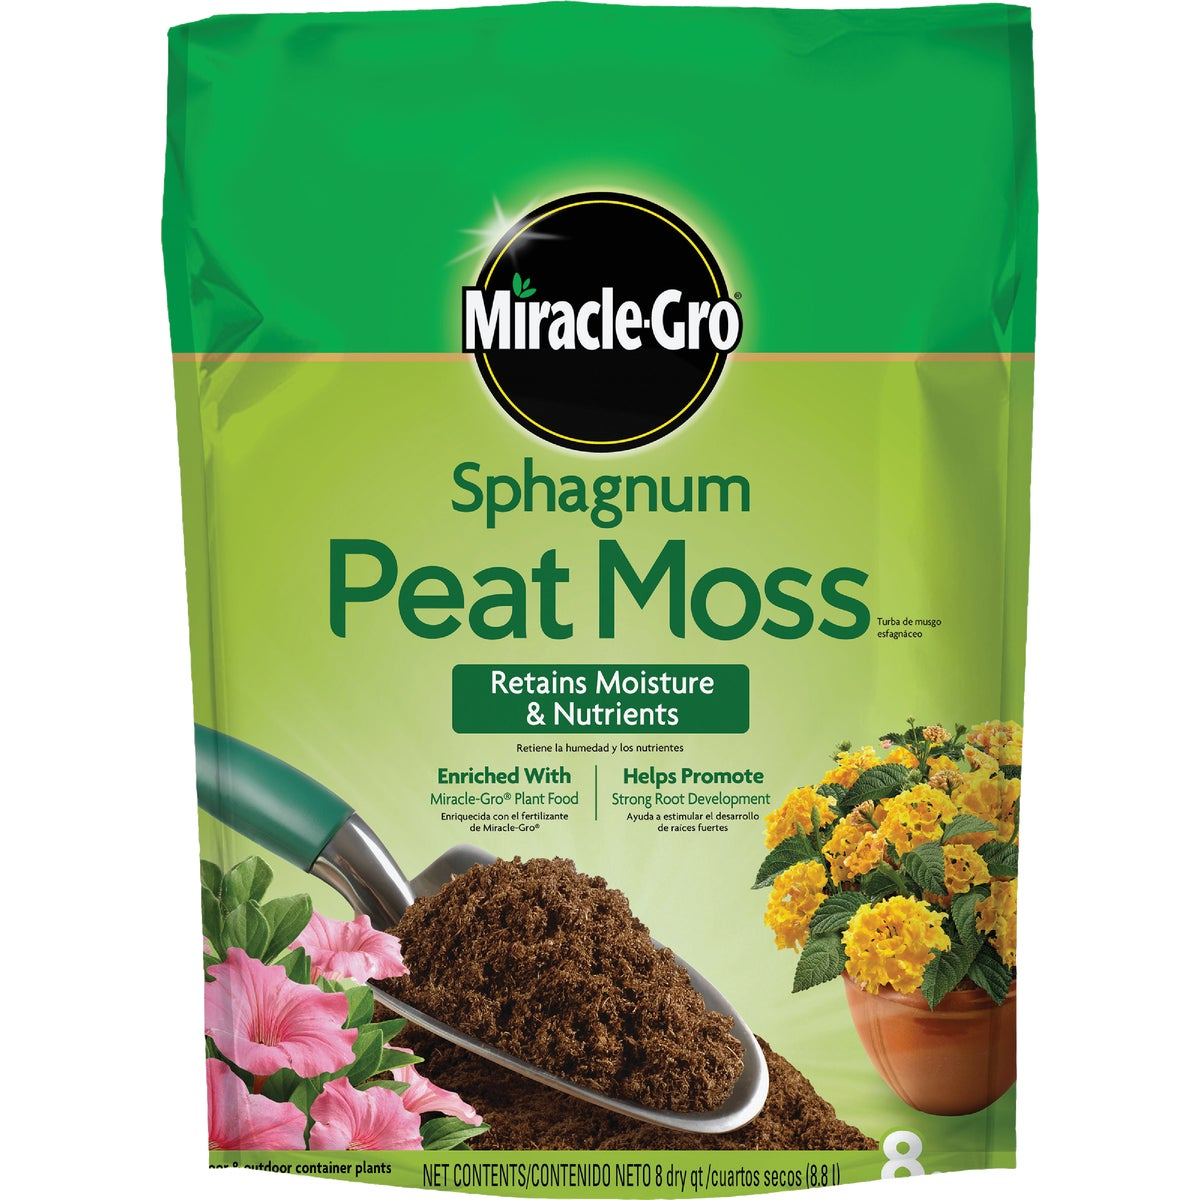 8QT PEAT MOSS - 85278500 by Scotts Organics